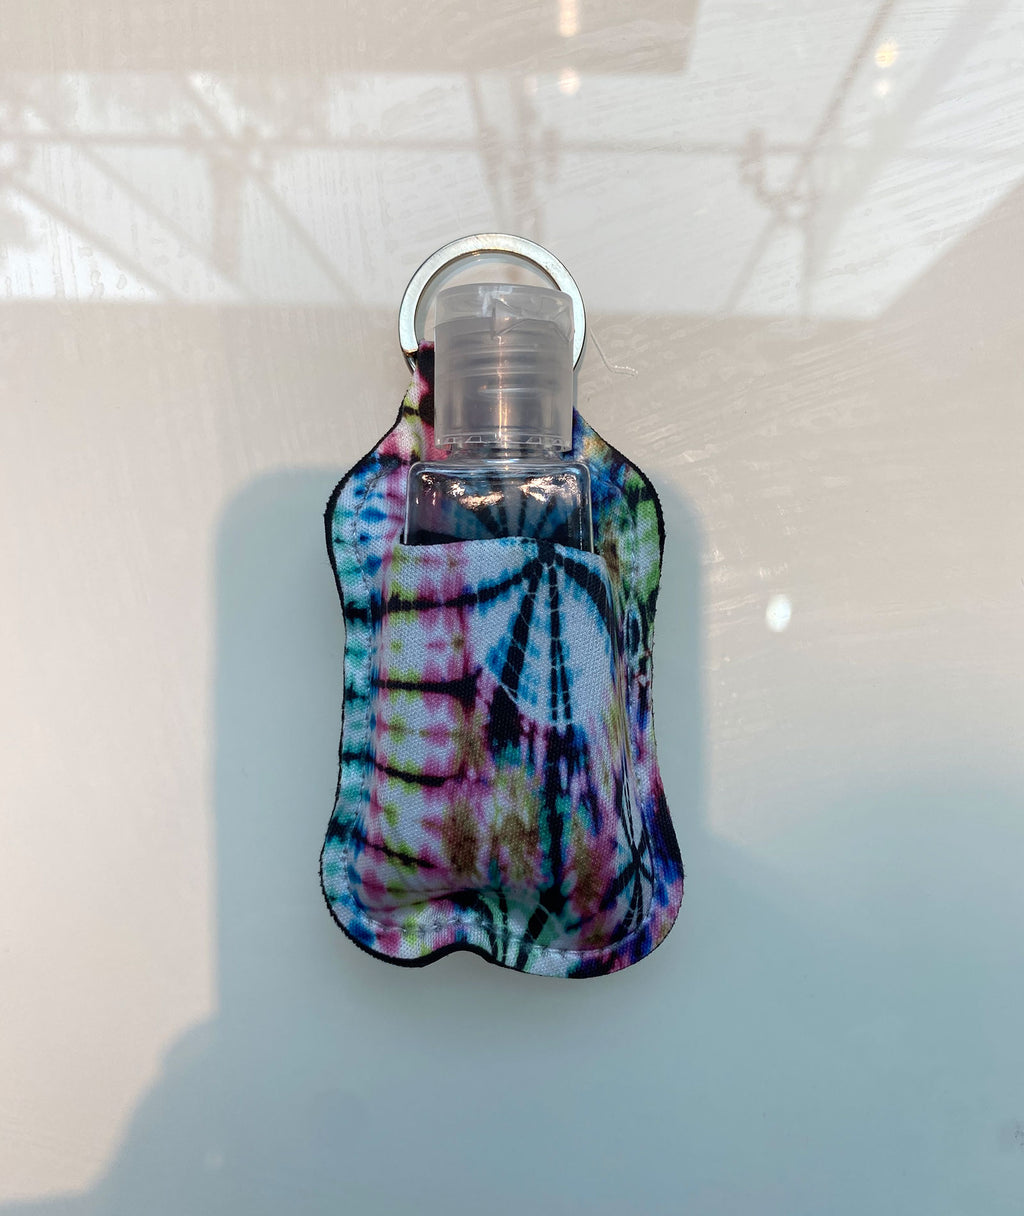 Truly Whimsical Hand Sanitizer Holder Splatter Tie-Dye